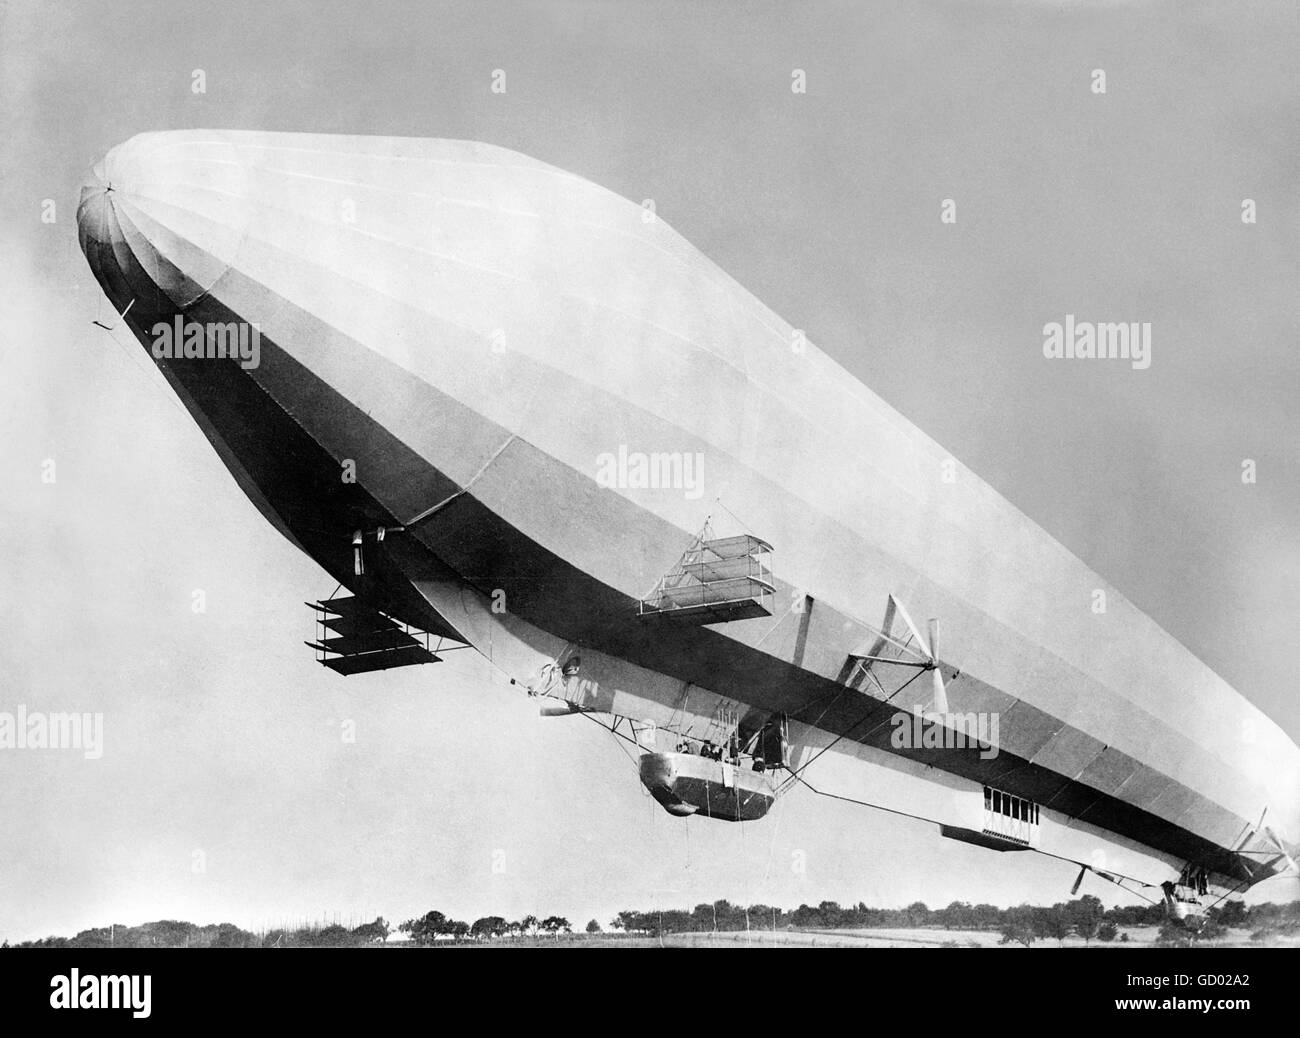 Zeppelin airship. Pre WWI German Zeppelin airship LZ 7. Photo from Bain News Service, 1910. Stock Photo